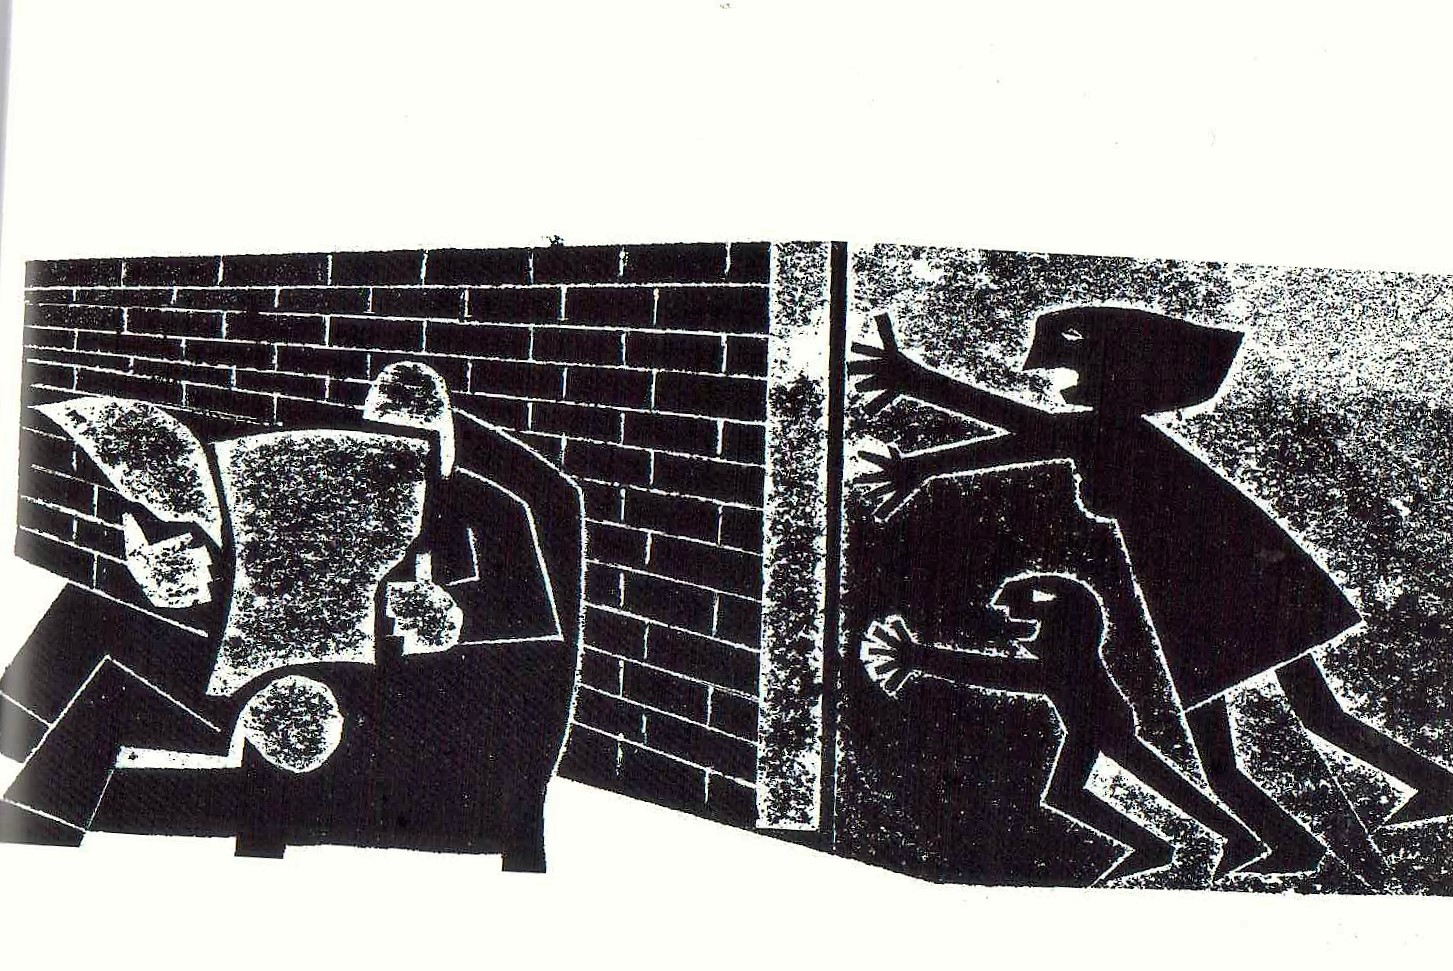 Jeff Perks- The Wall. Linocut.